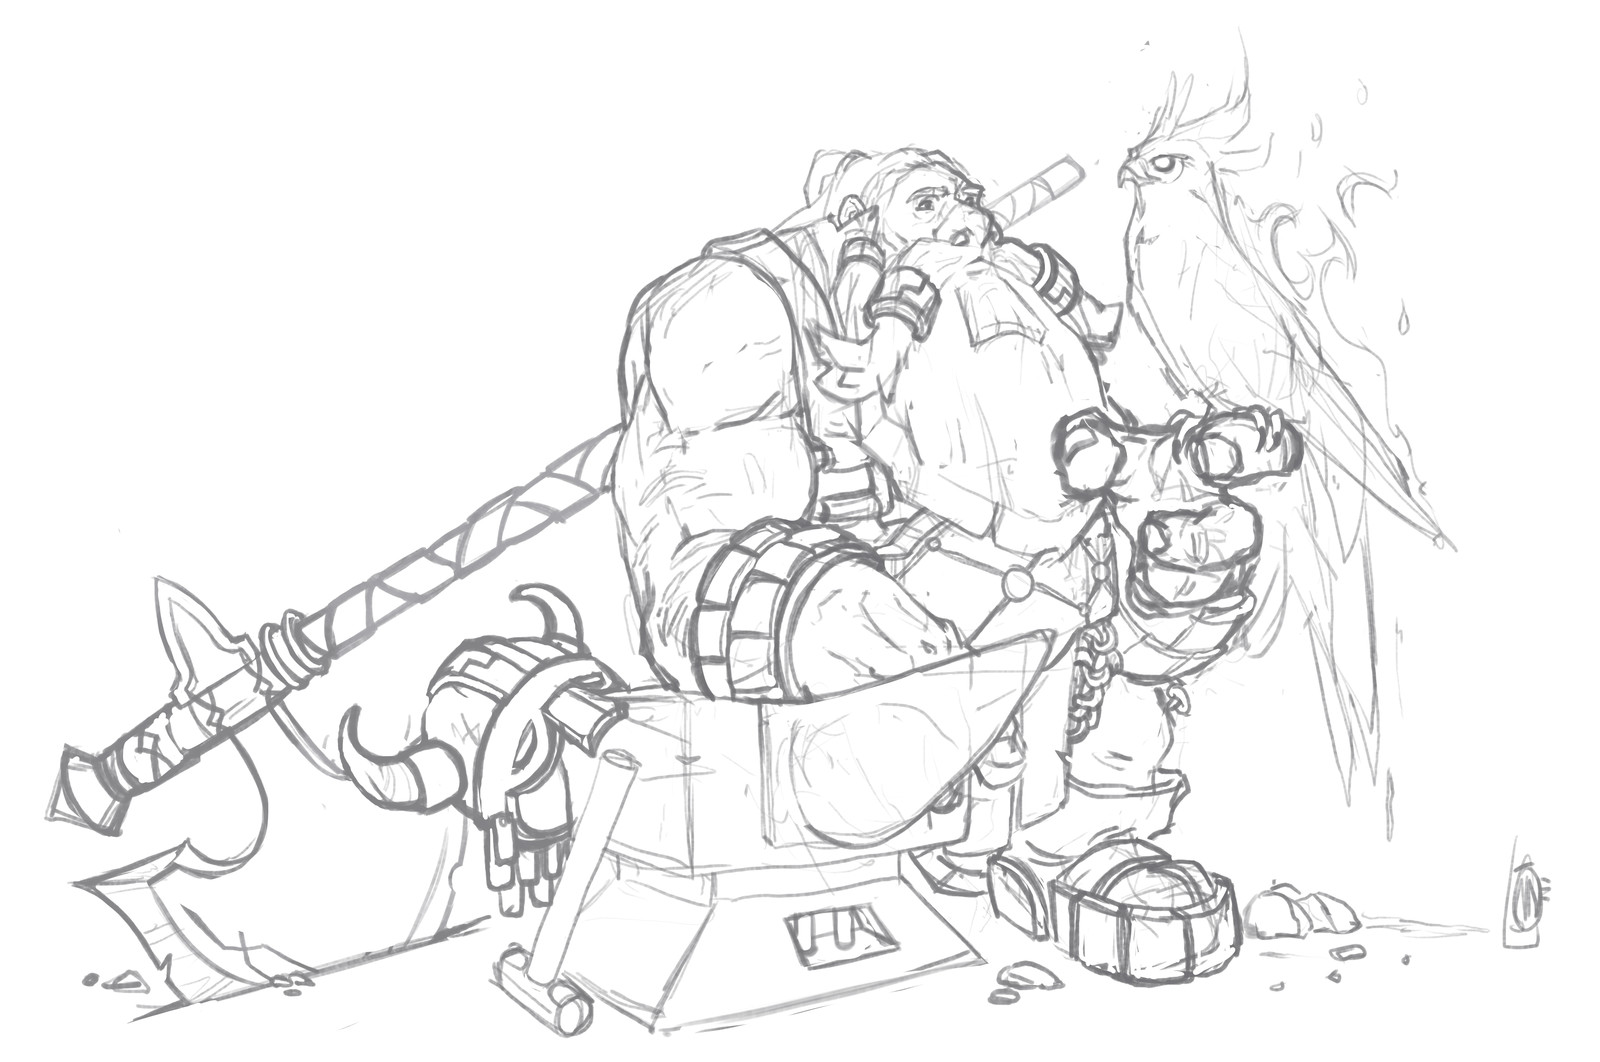 Blacksmith and his pet